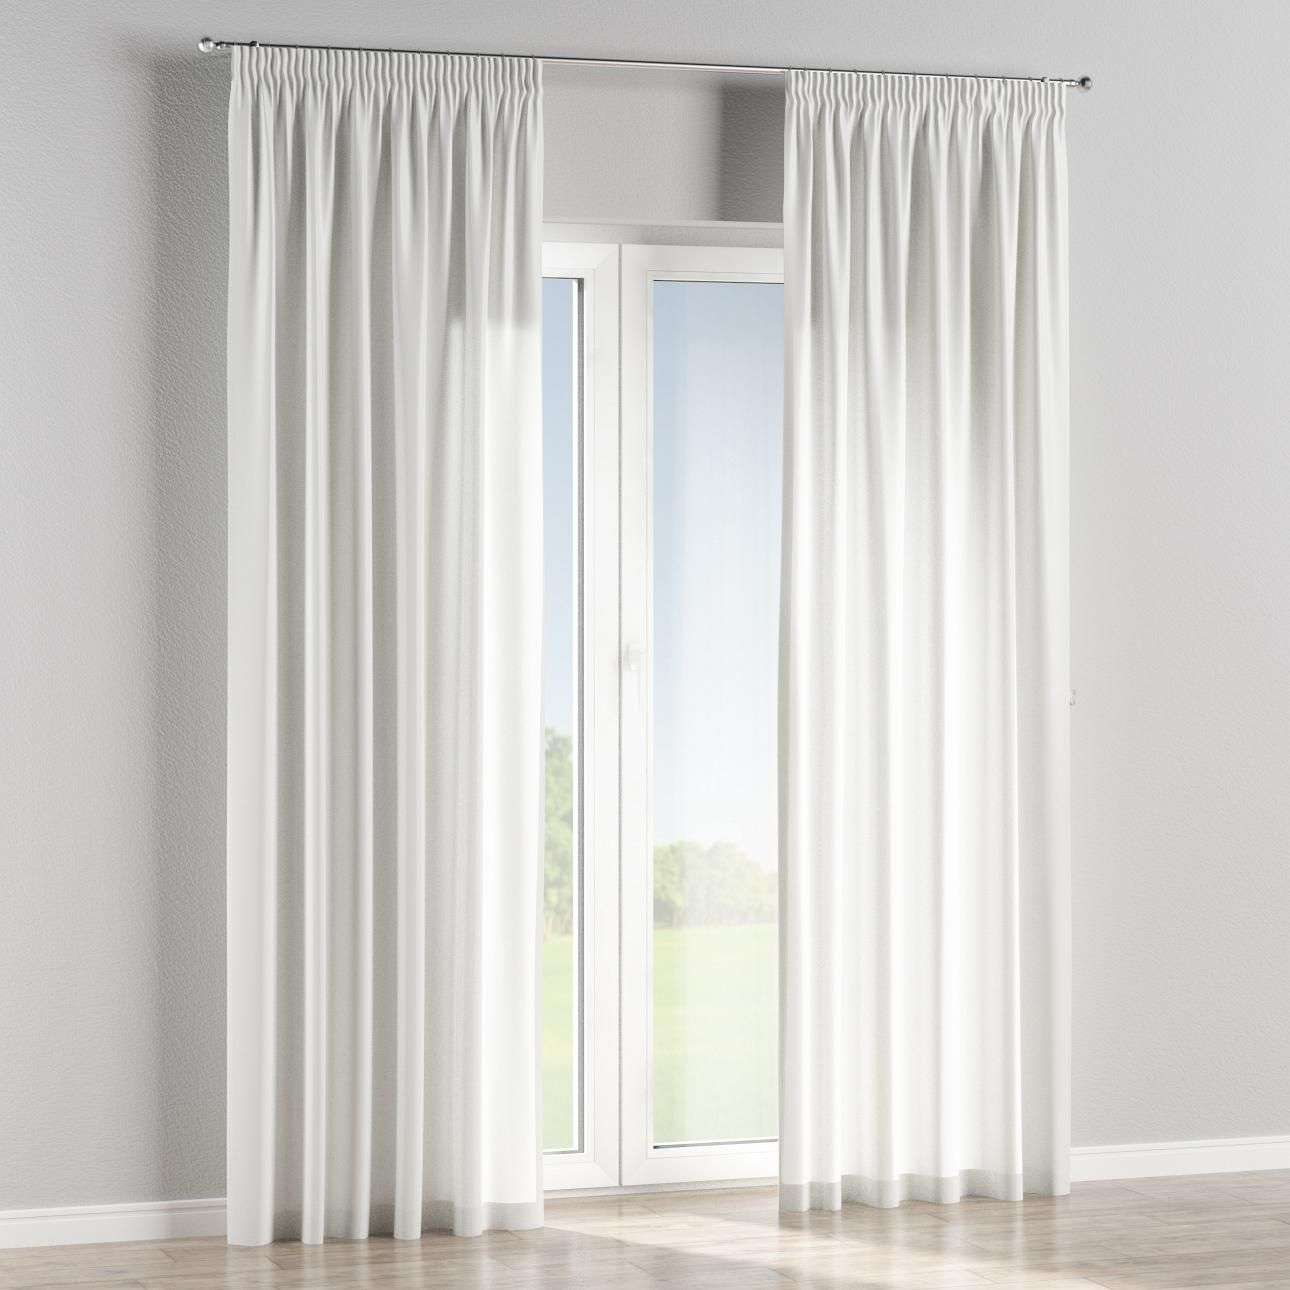 Pencil pleat curtains in collection SALE, fabric: 136-60